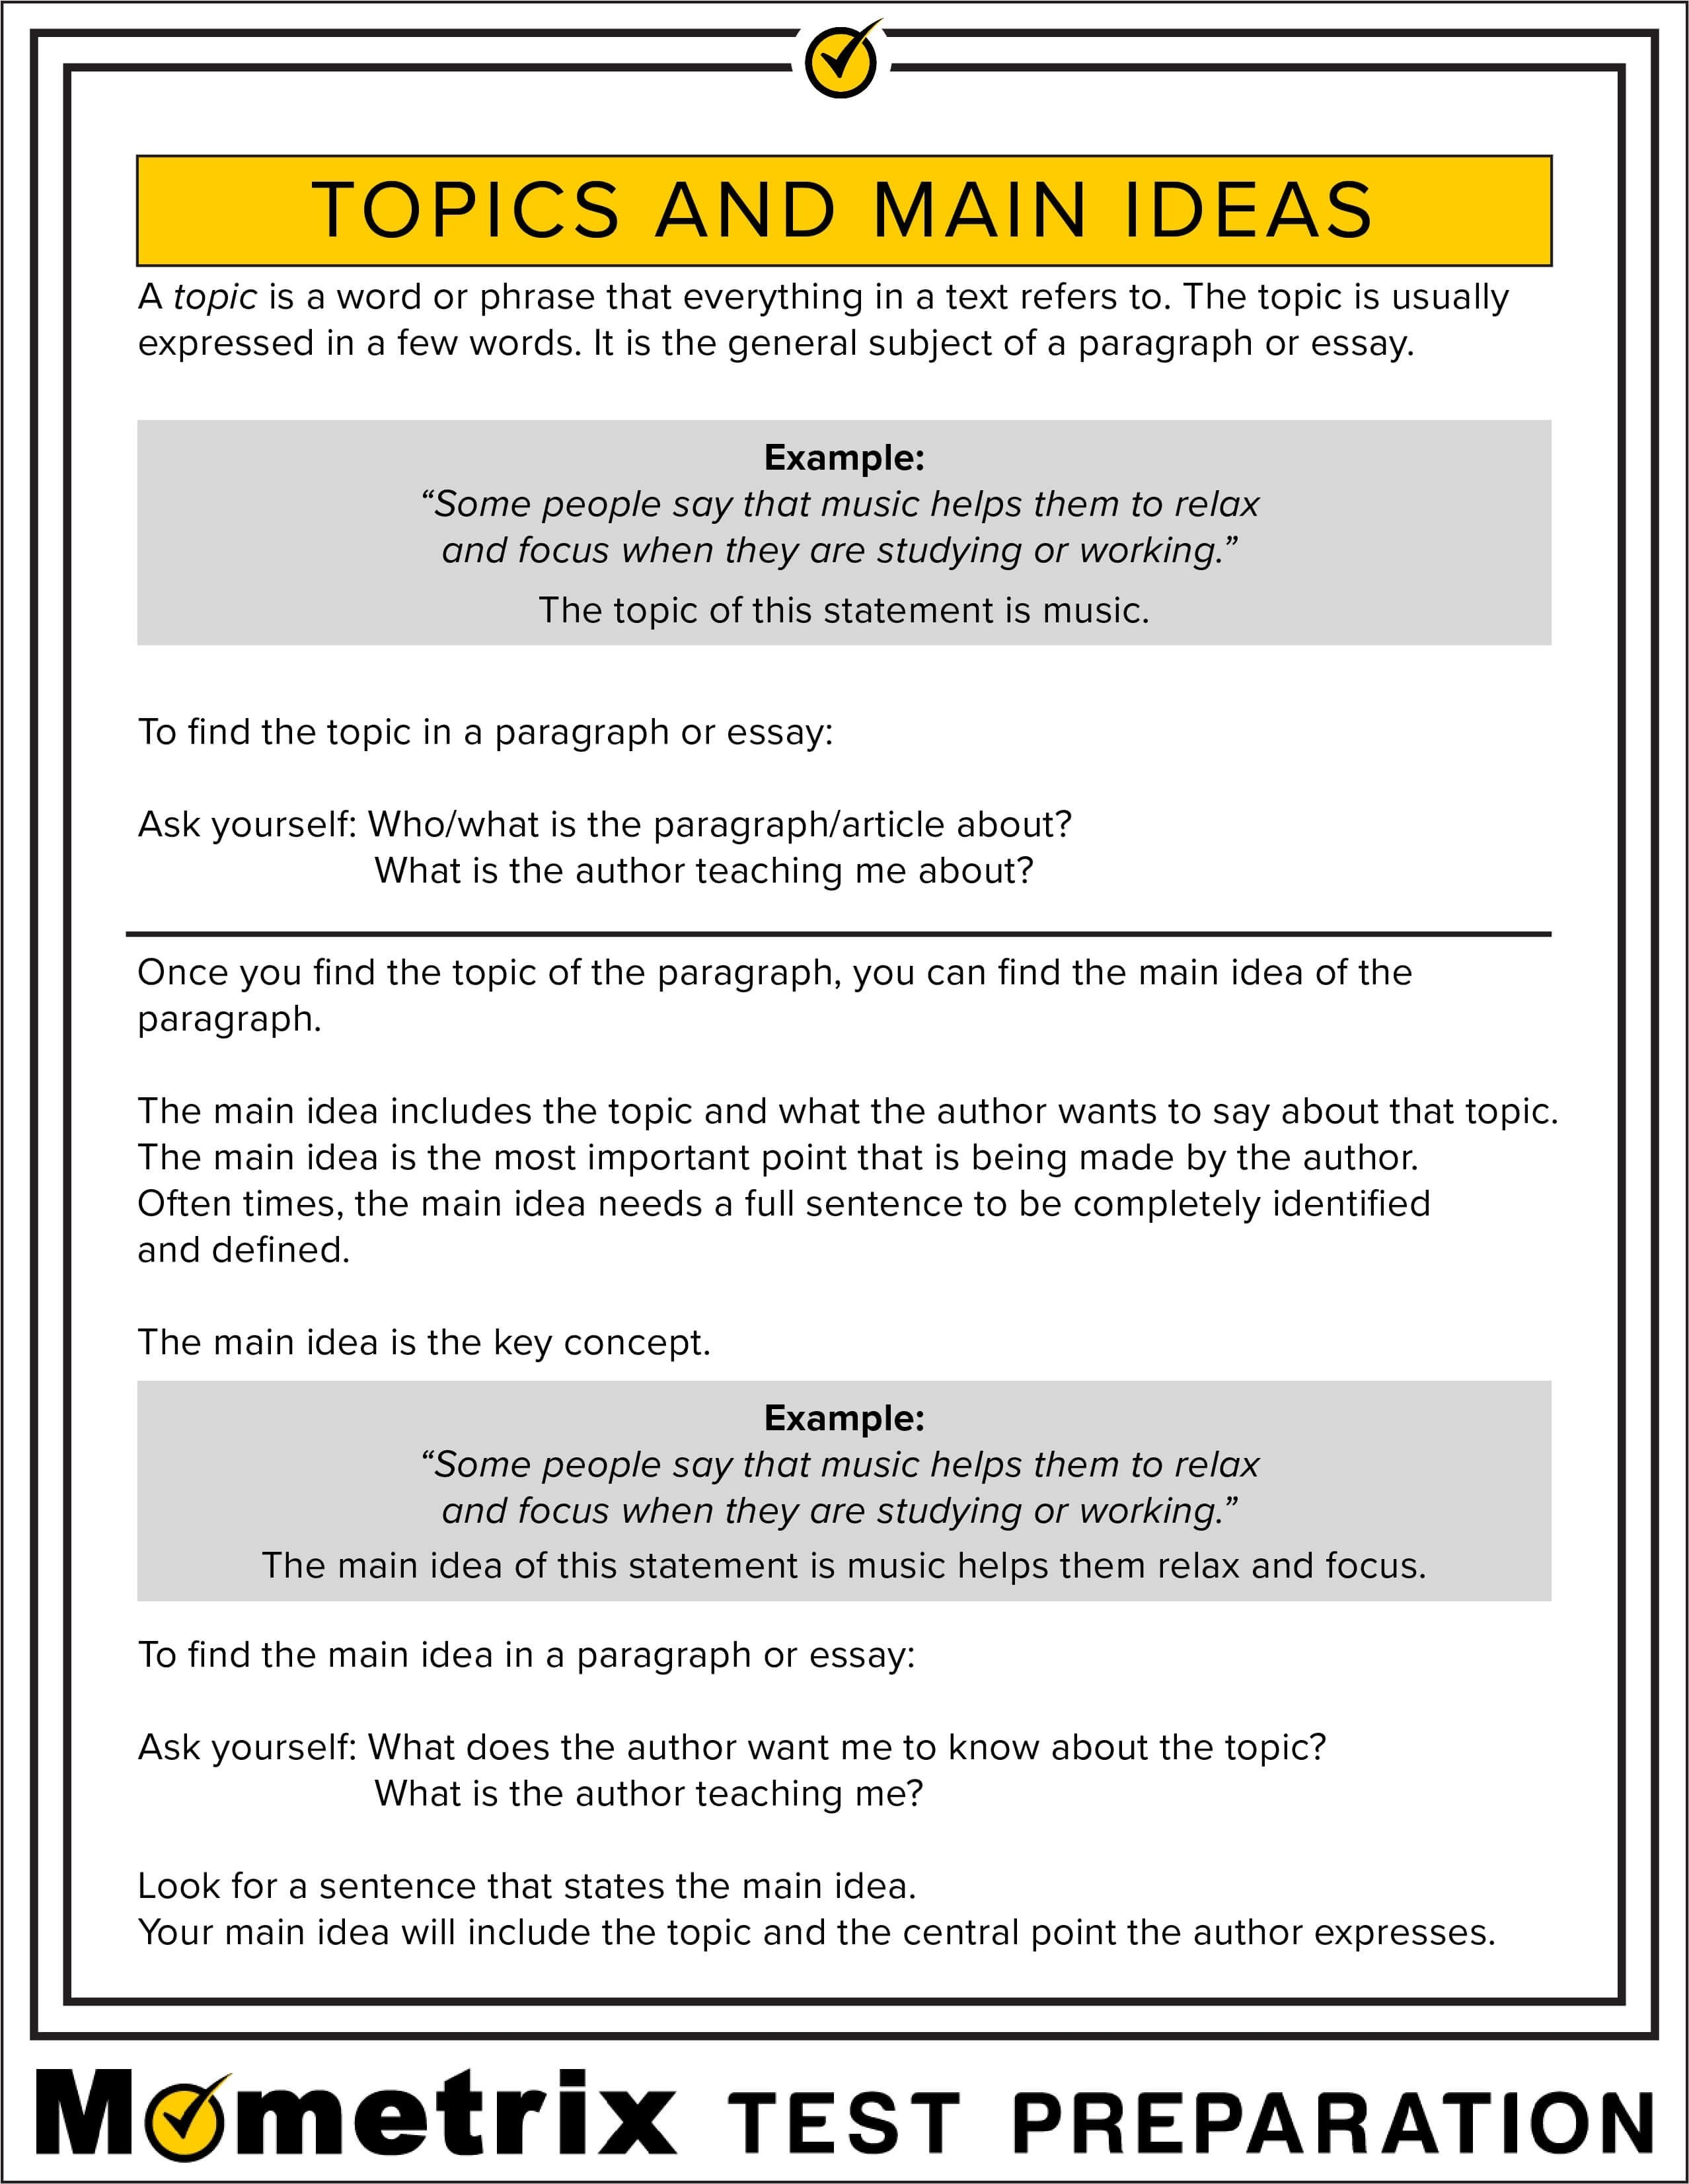 10 Awesome The Sentence That States The Main Idea Of The